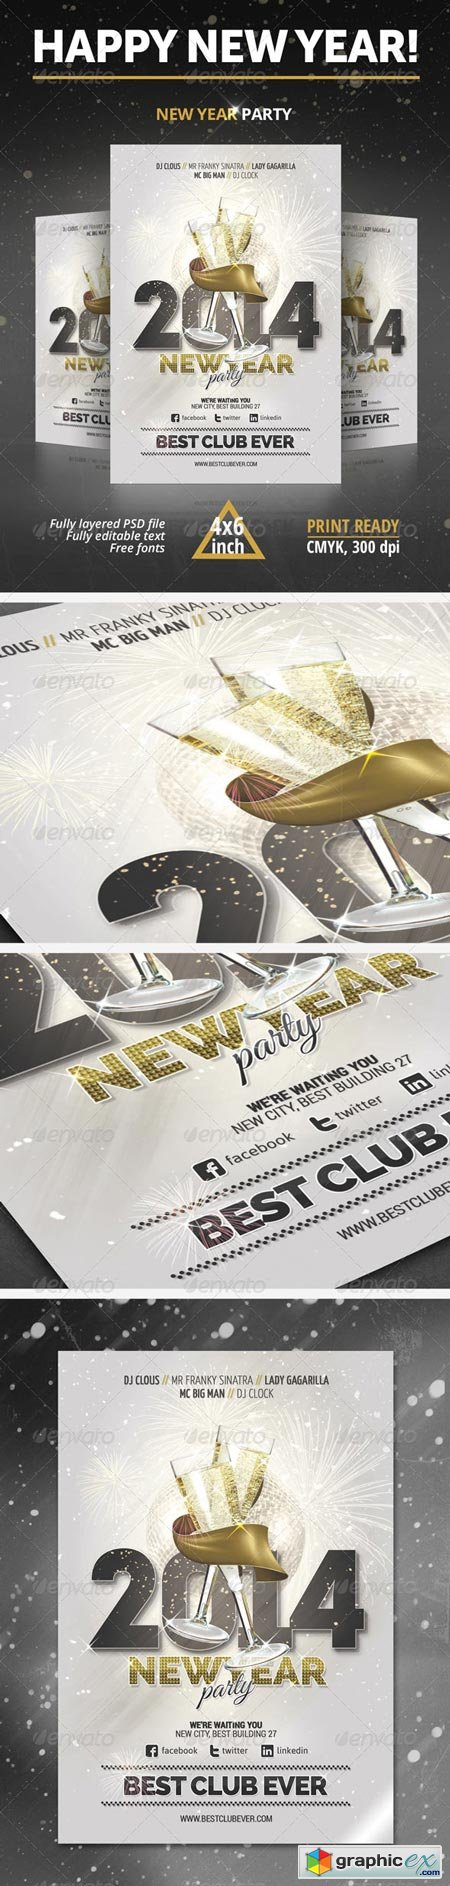 New Year Party Flyer 6300375